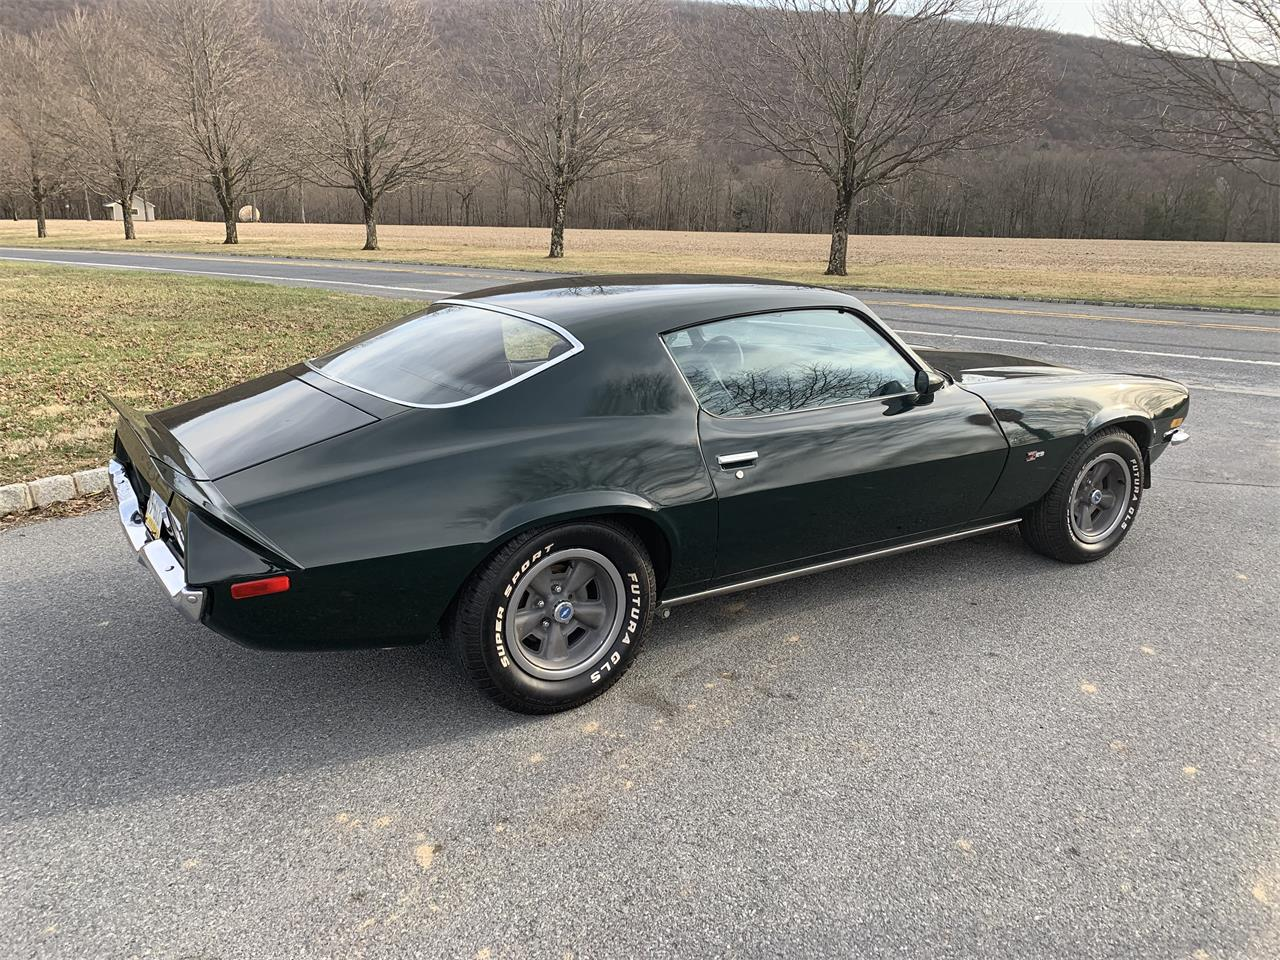 Large Picture of Classic '73 Chevrolet Camaro Z28 located in Pennsylvania - $29,900.00 - PZBW